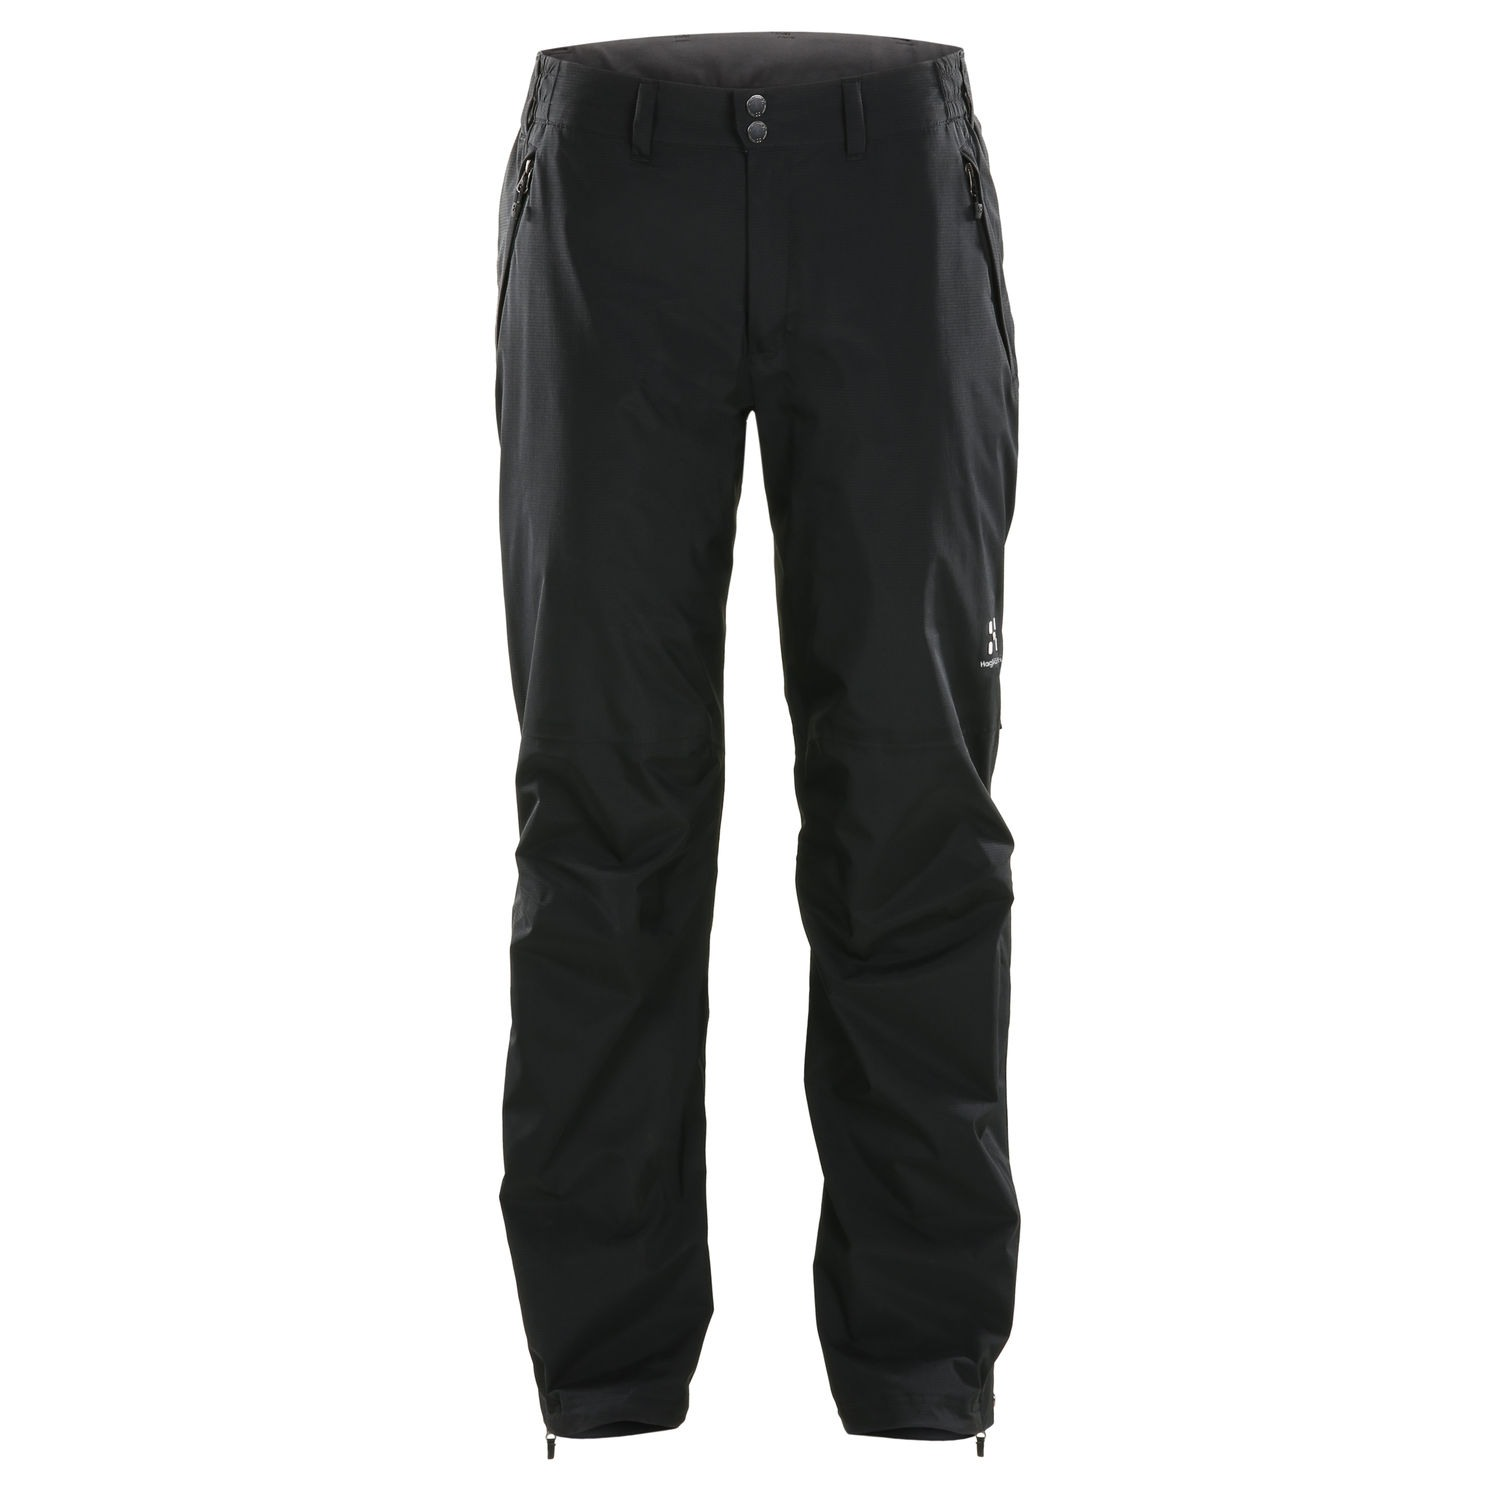 Black Waterproof Trekking Pants